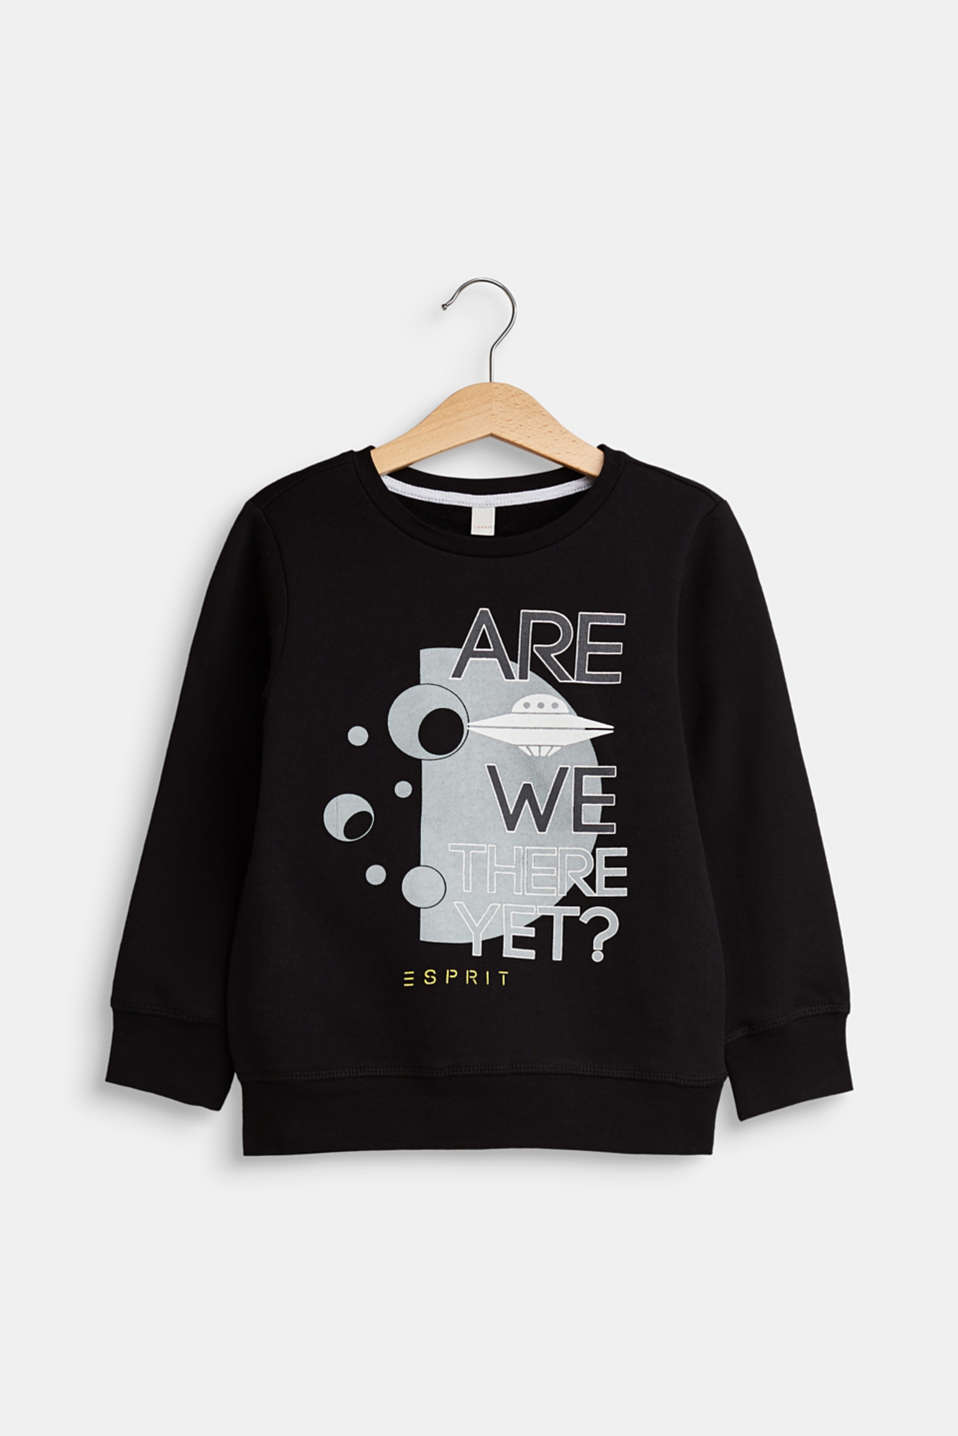 Esprit - Sweatshirt with a front print, 100% cotton